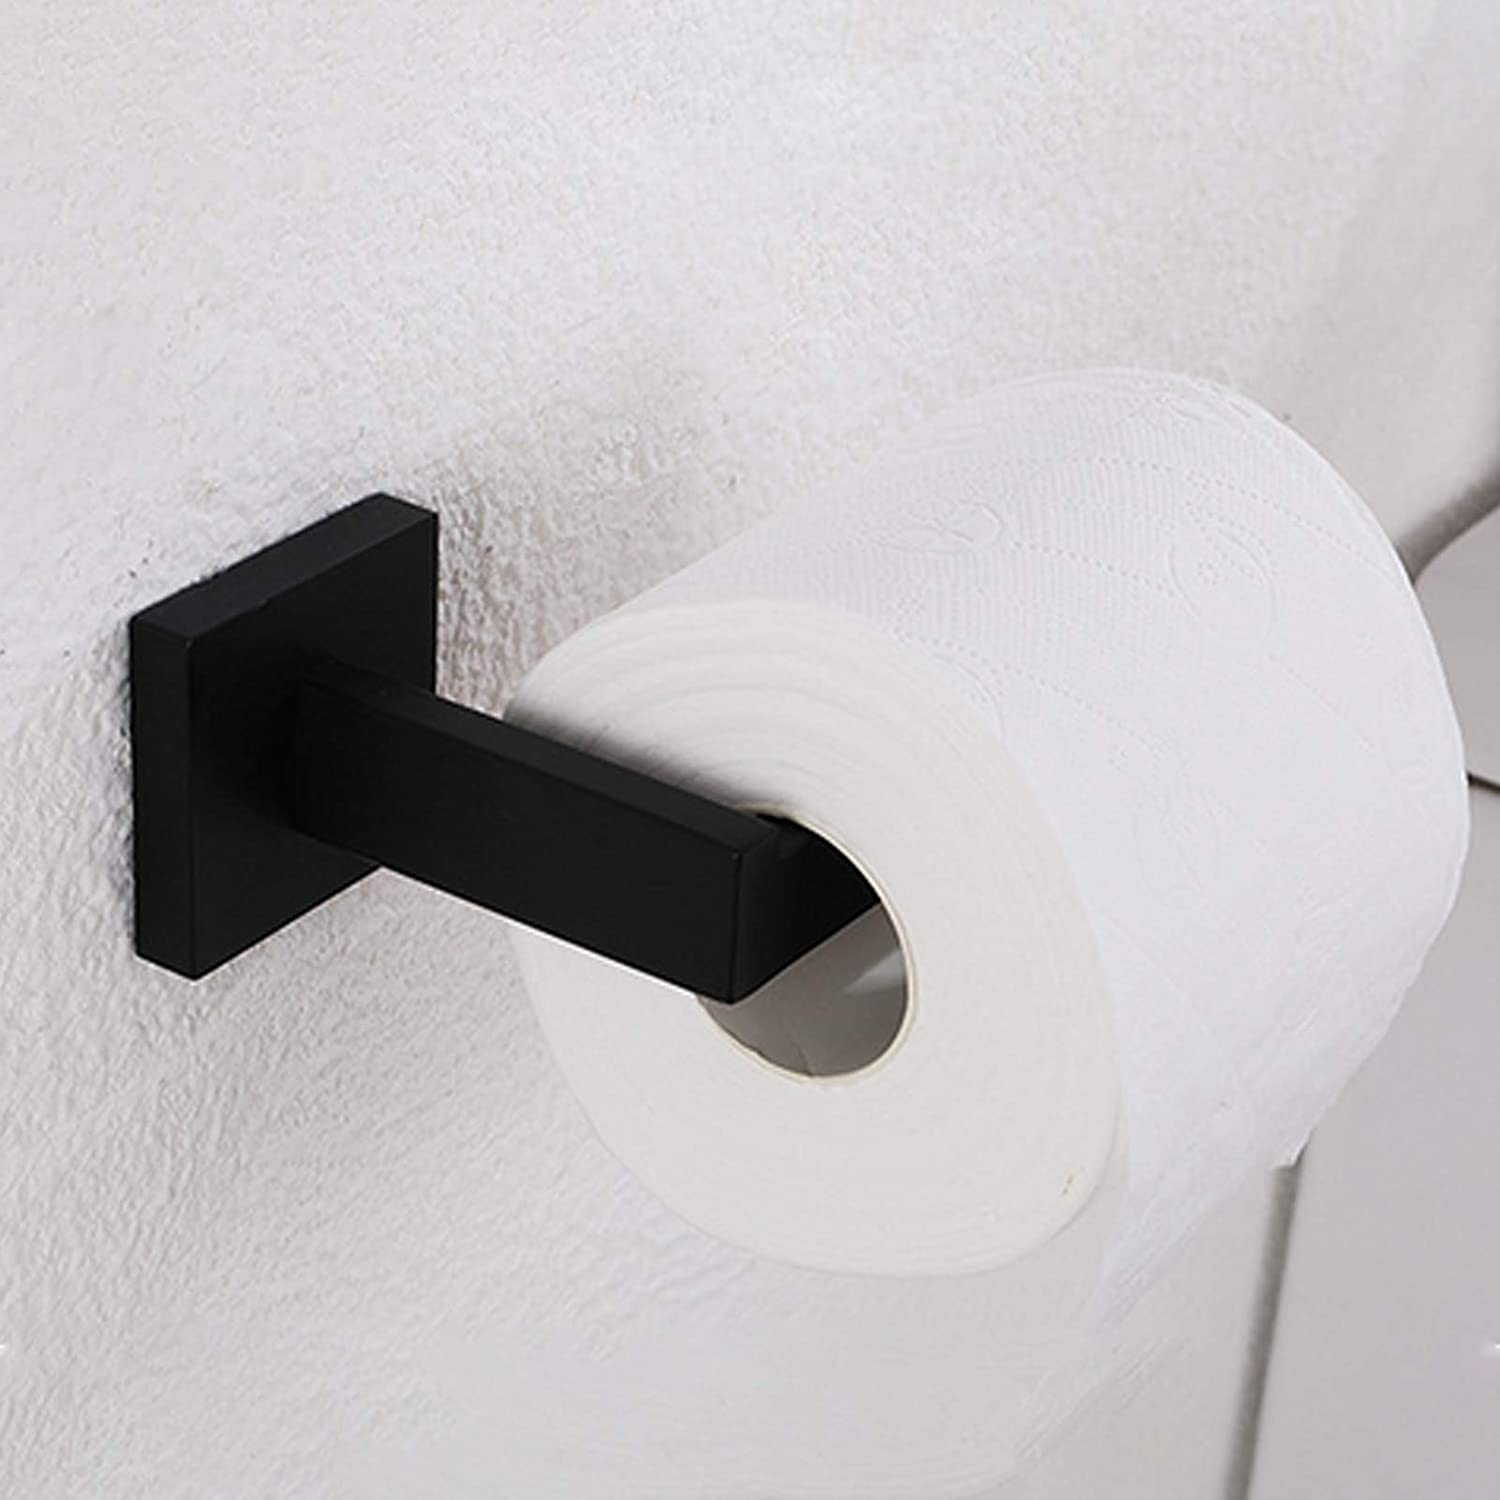 Toilet Roll Holder Max 77% OFF Outlet SALE Rustproof Wall-Mounted Paper